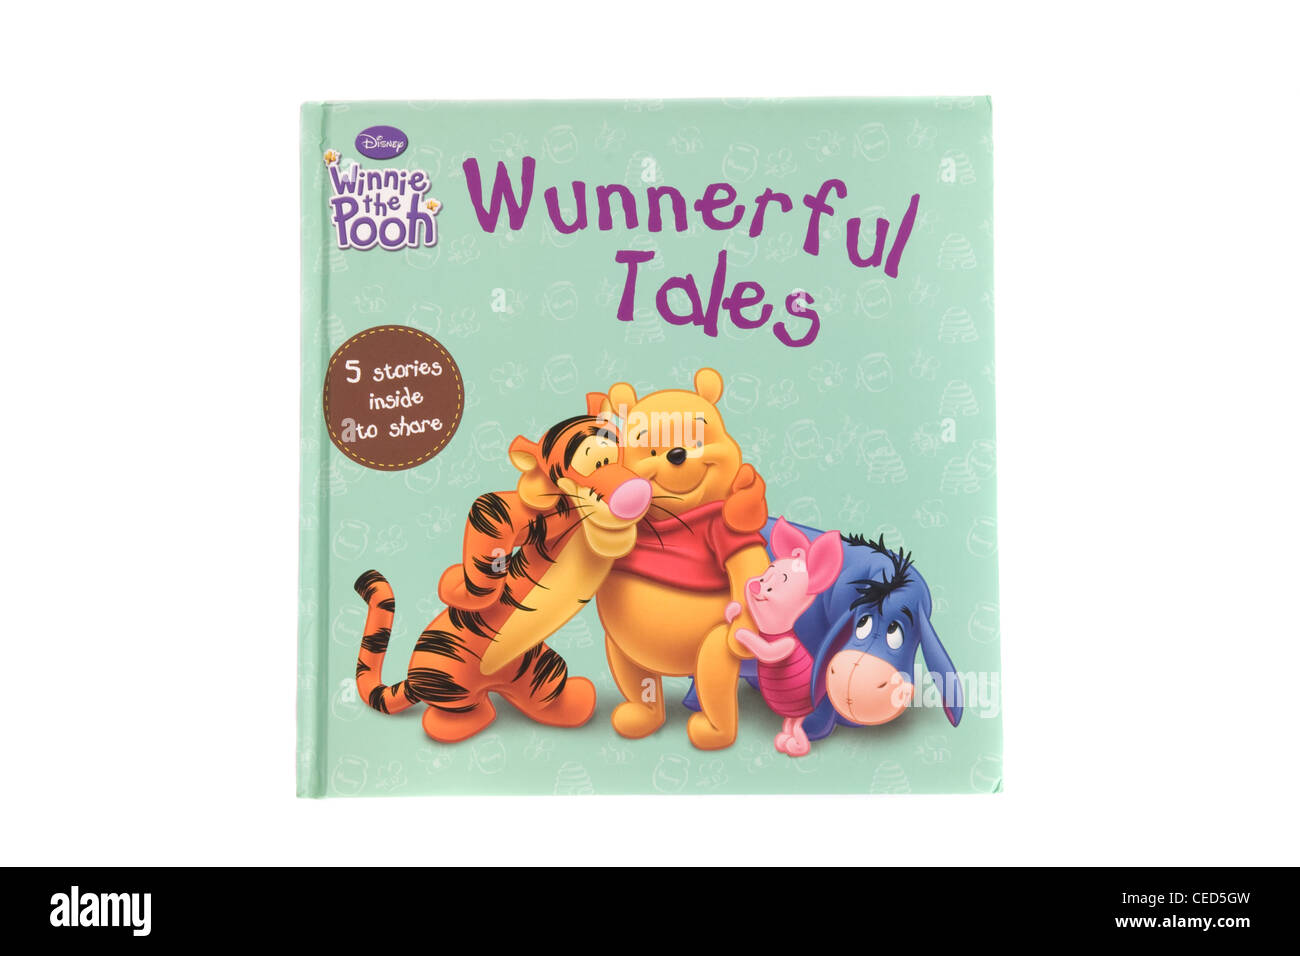 A hardback book by Disney. Wunnerful tales with Winnie the Pooh. - Stock Image